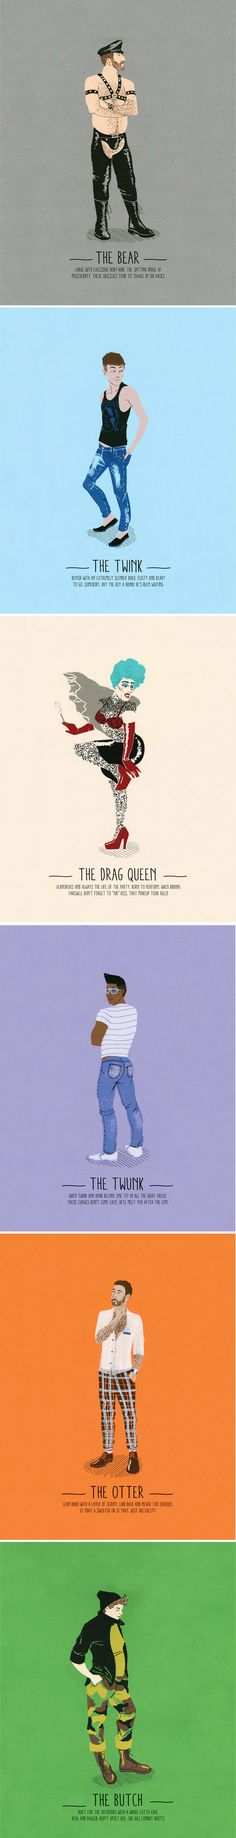 Which Gay Stereotype are you?Meet the Otter, Bear, Butch, DragQueen, Twink, and Twunk.A poster series by Paul Tuller & James Kuczynski. A portion of the proceeds of merchandise go to benefit GLSEN (Gay Lesbian Straight Education Network) On Sale at Society6.